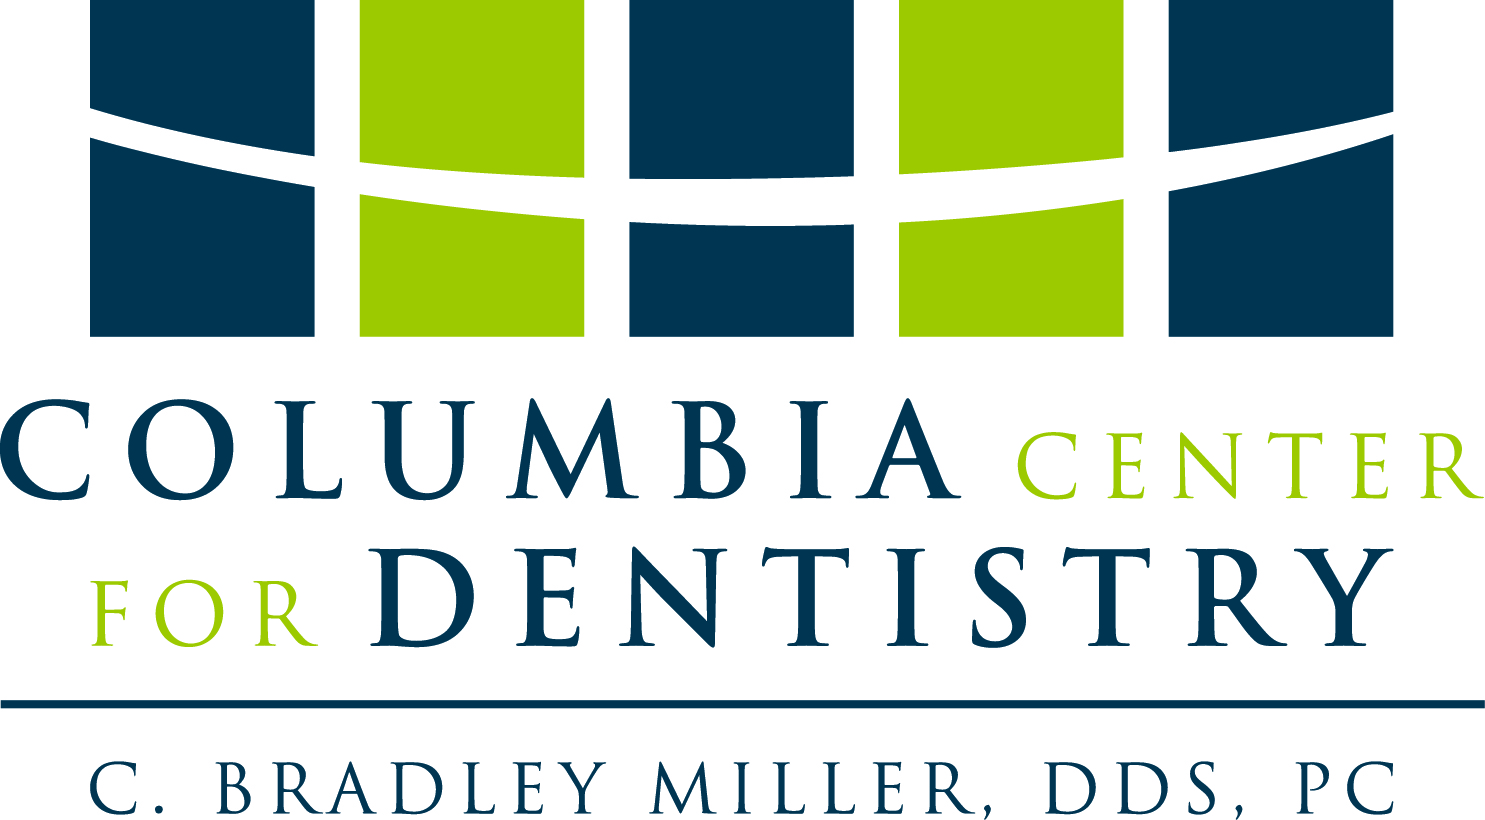 Columbia Center for Dentistry <br> C. Bradley Miller, DDS, P.C.